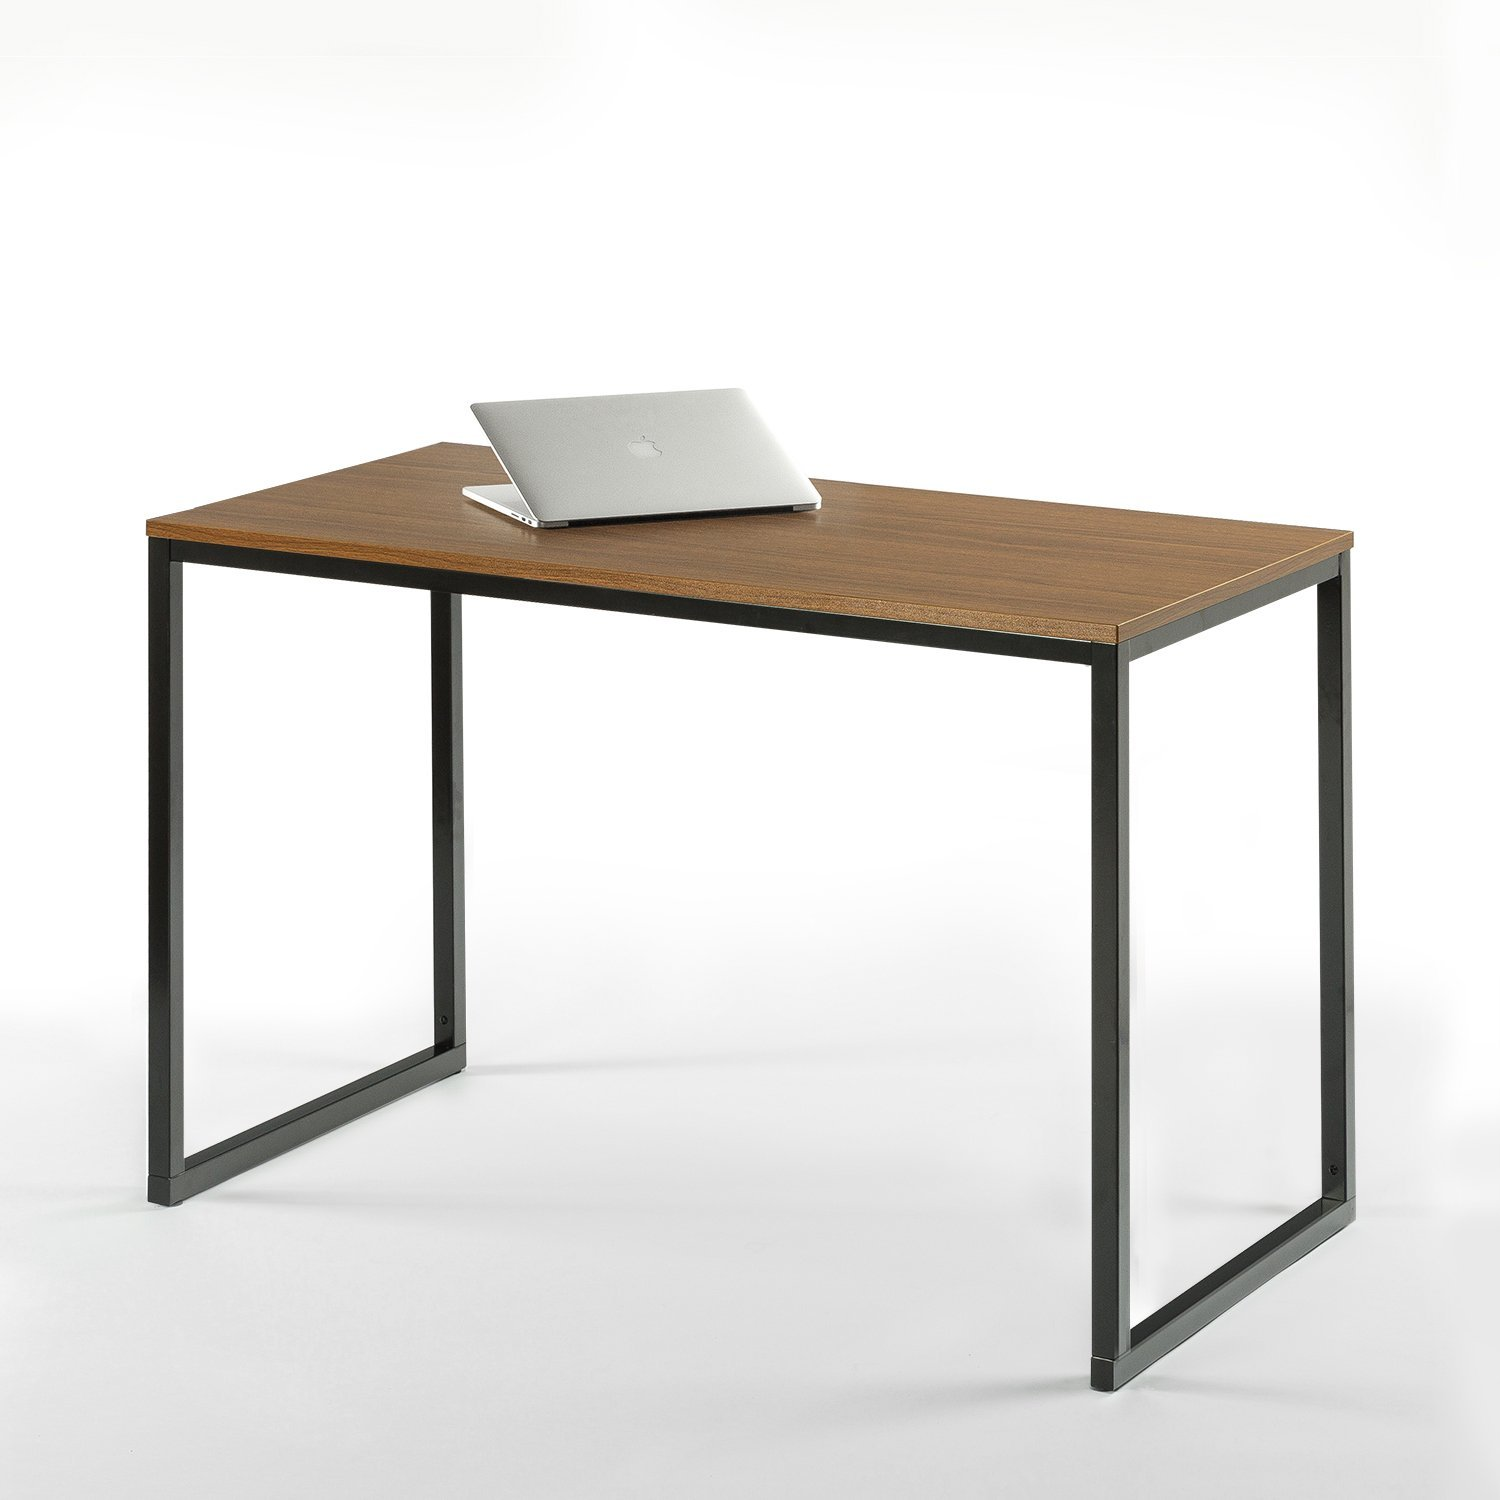 Zinus Jennifer Modern Studio Collection Soho Desk / Table / Computer Table, Natural by Zinus